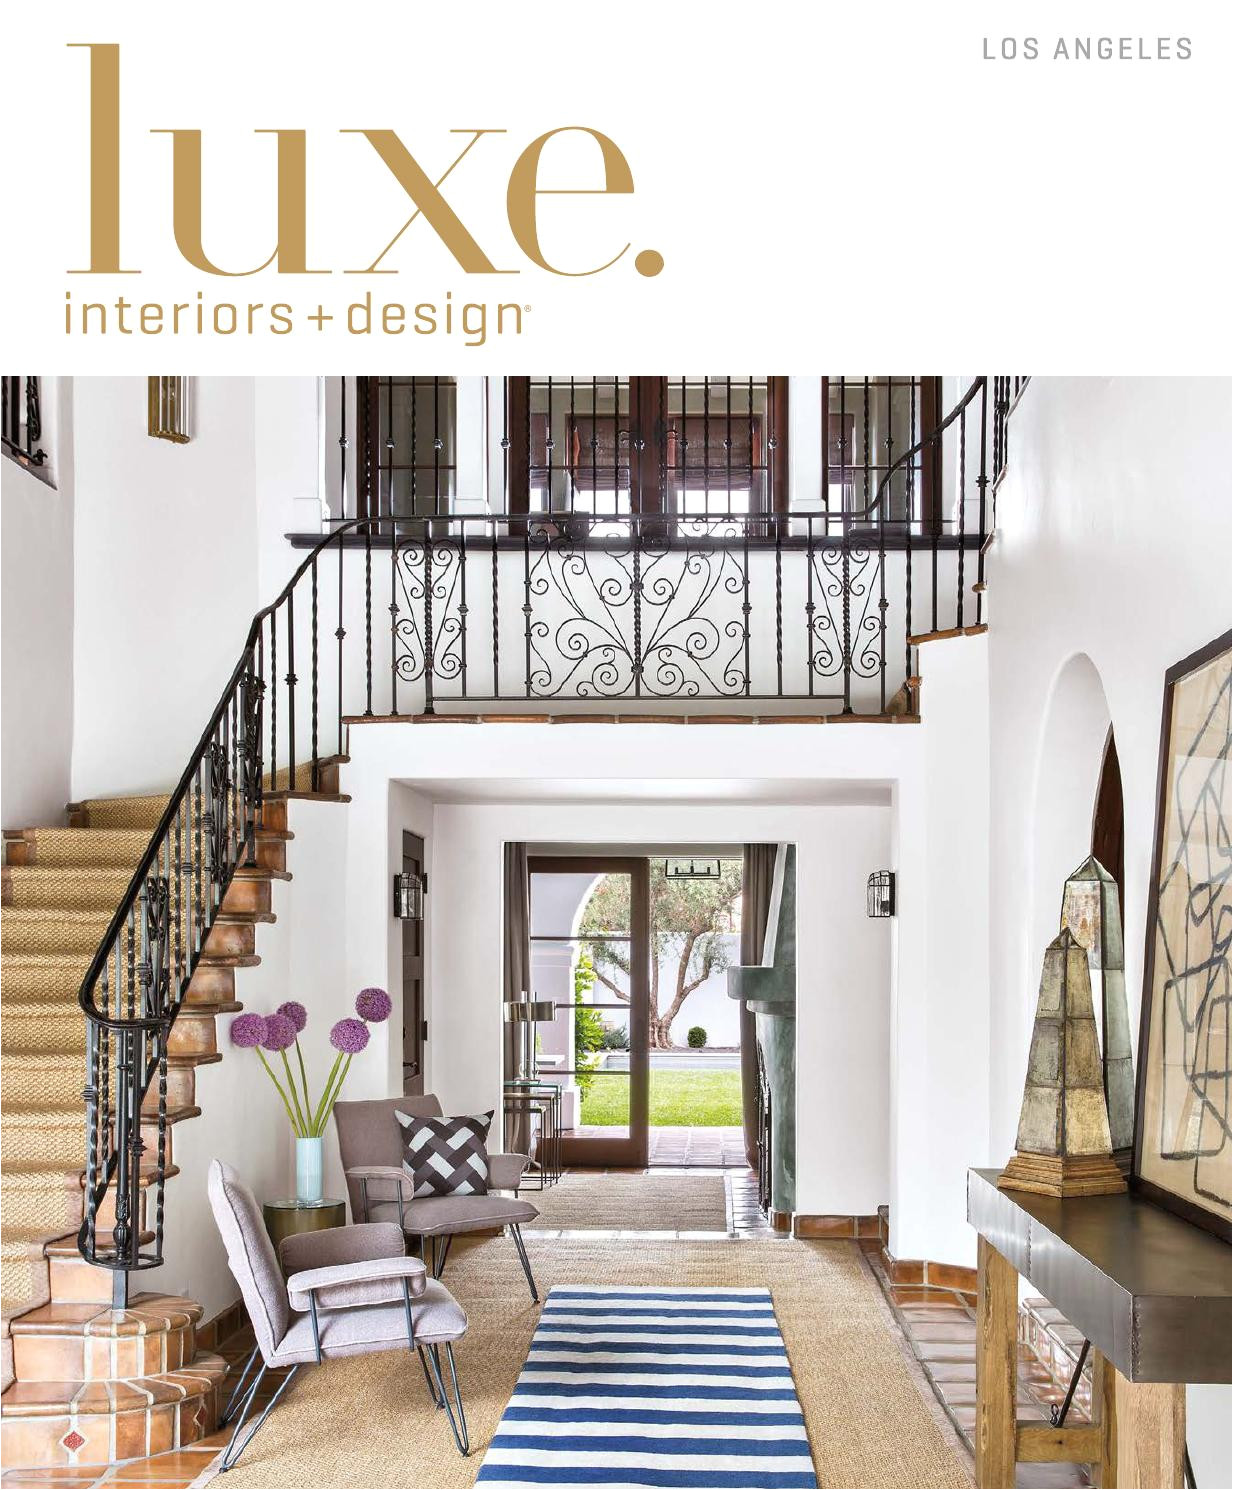 Bodegas De Muebles En Los Angeles California Luxe Magazine September 2015 Los Angeles by Sandowa issuu